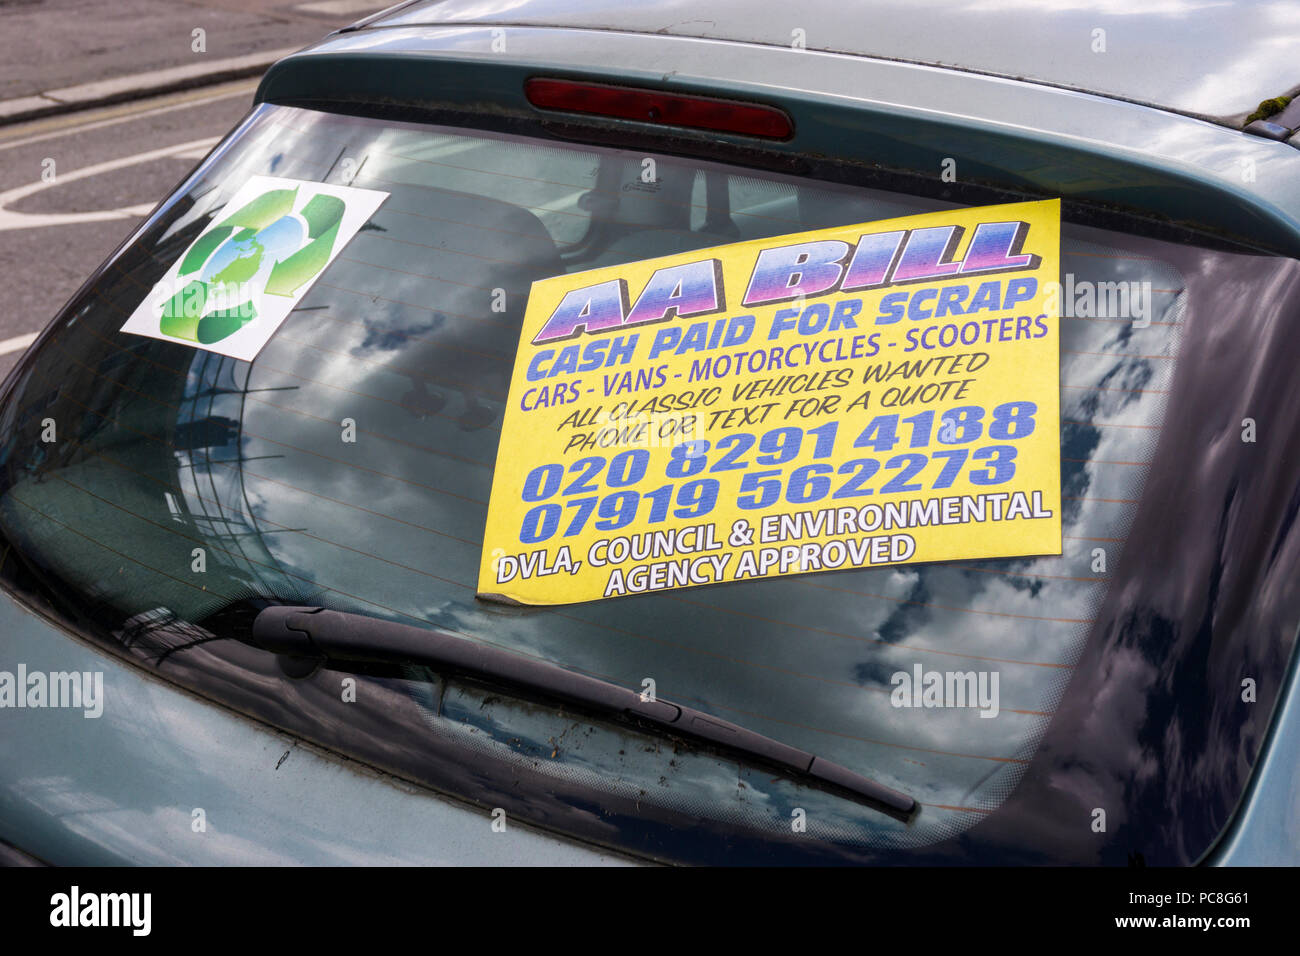 A sign in a car window in south London offers to pay cash for scrap cars, vans, motorcycles and scooters. - Stock Image